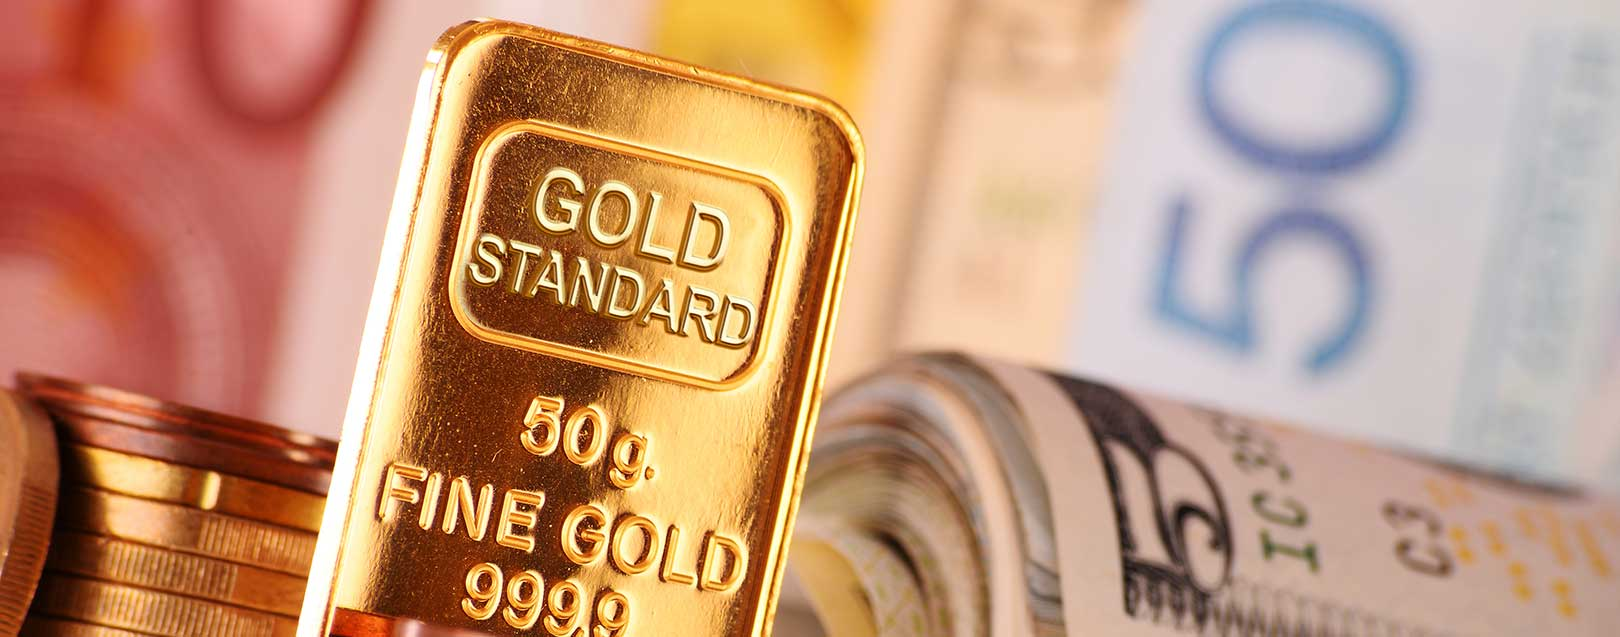 Gold prices edges down as Brexit shock wanes